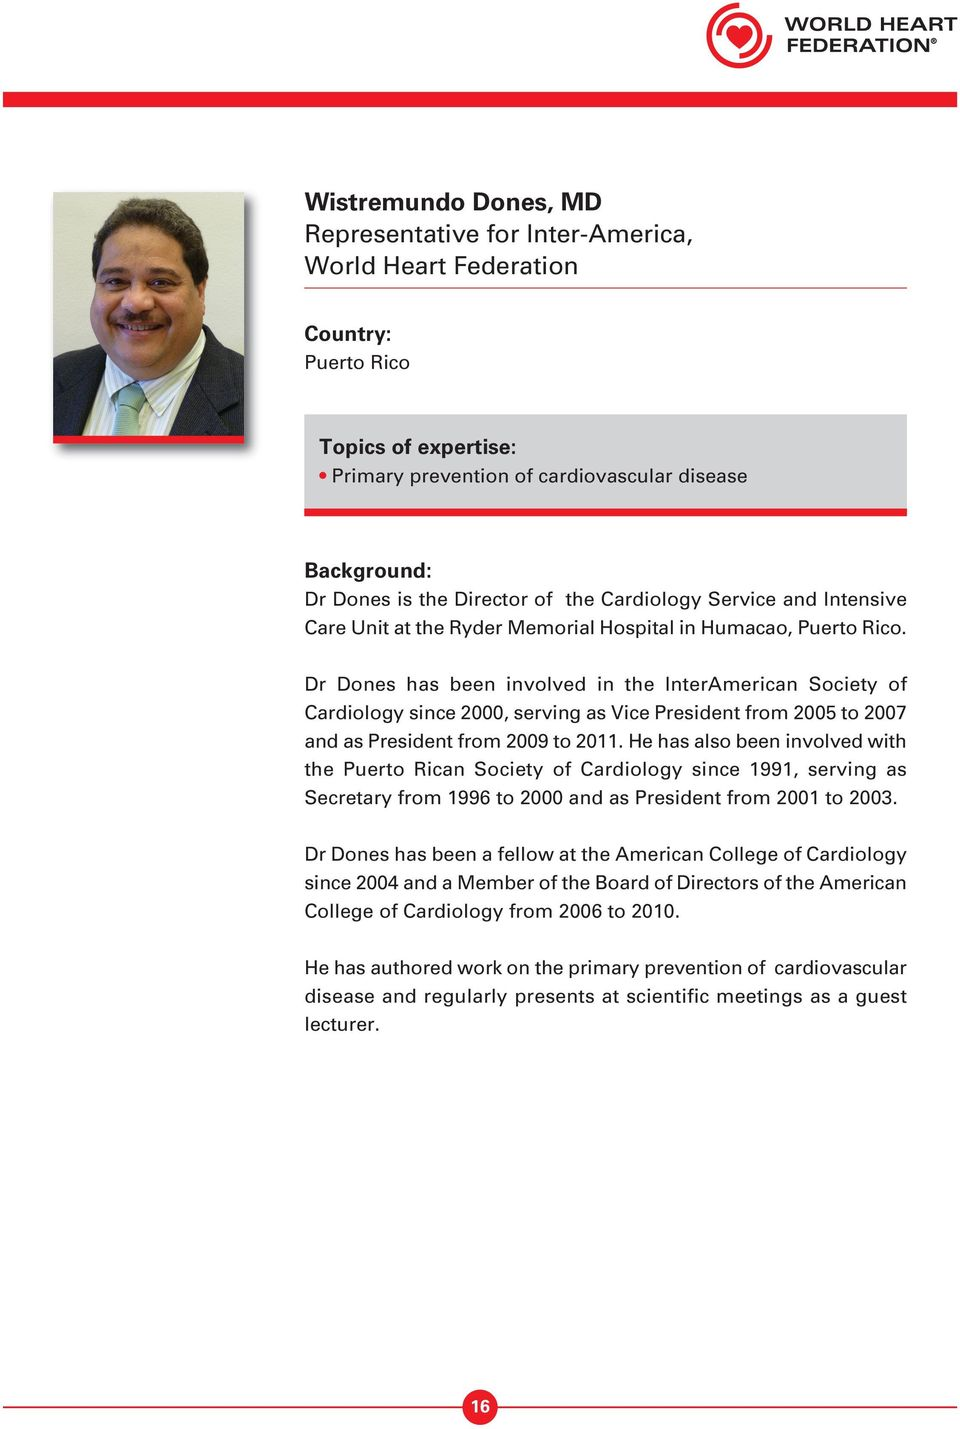 Dr Dones has been involved in the InterAmerican Society of Cardiology since 2000, serving as Vice President from 2005 to 2007 and as President from 2009 to 2011.